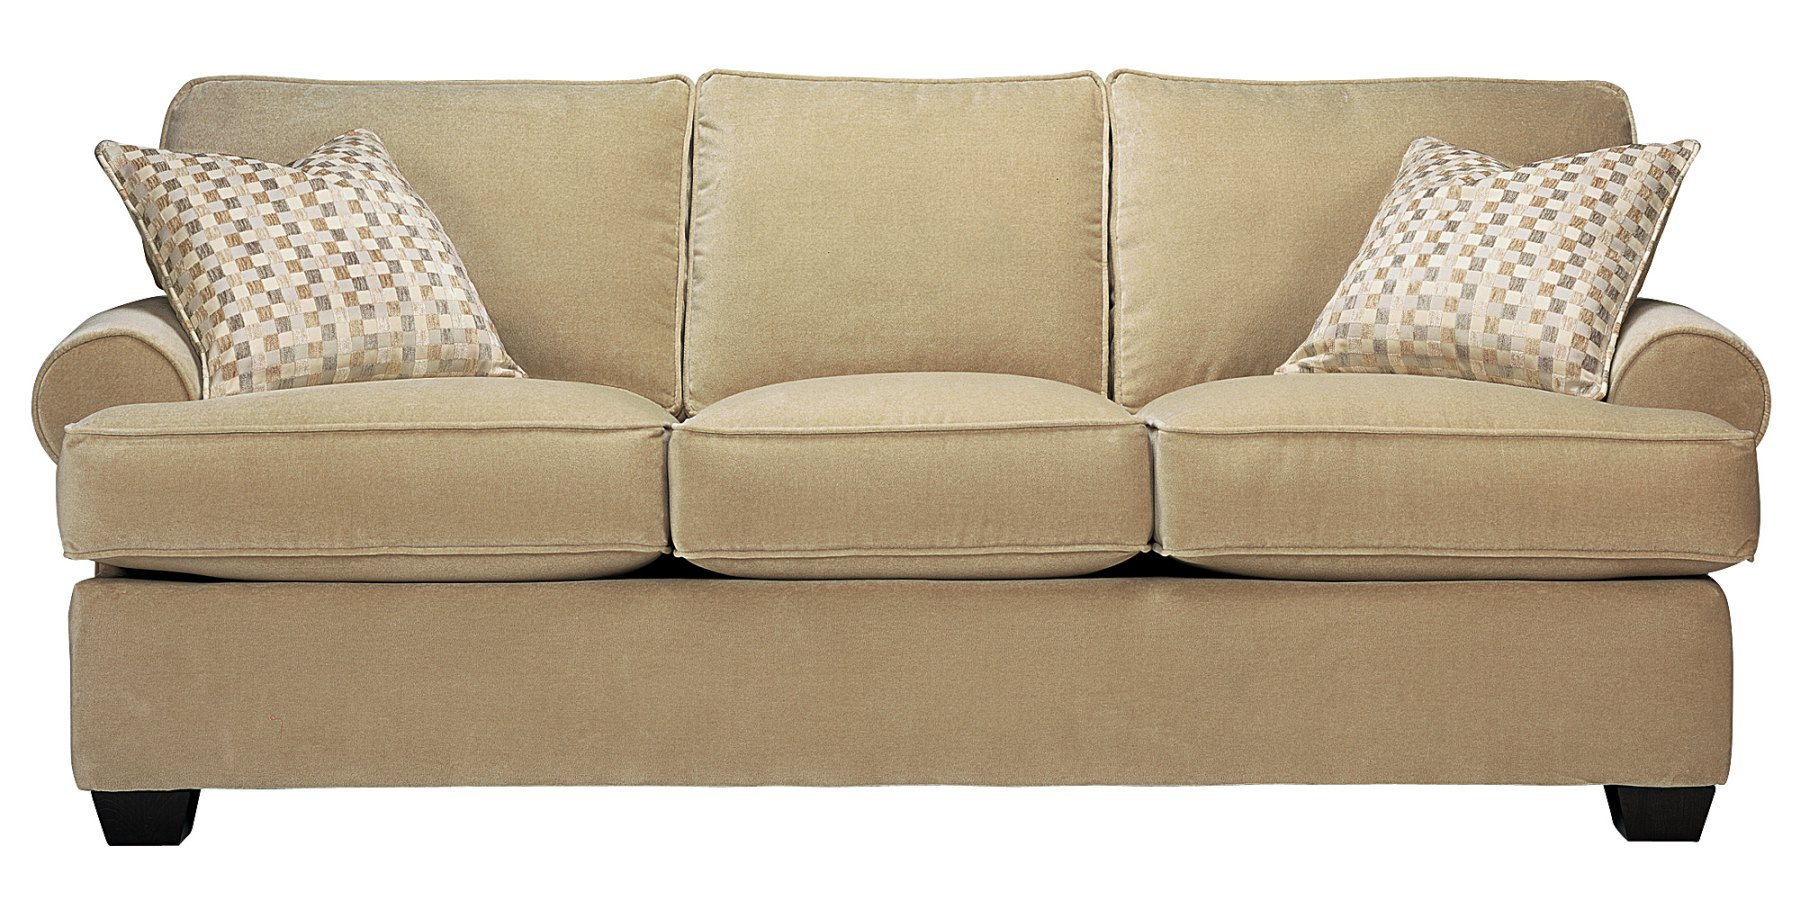 Different Couch Styles different sofa styles ~ crowdbuild for .